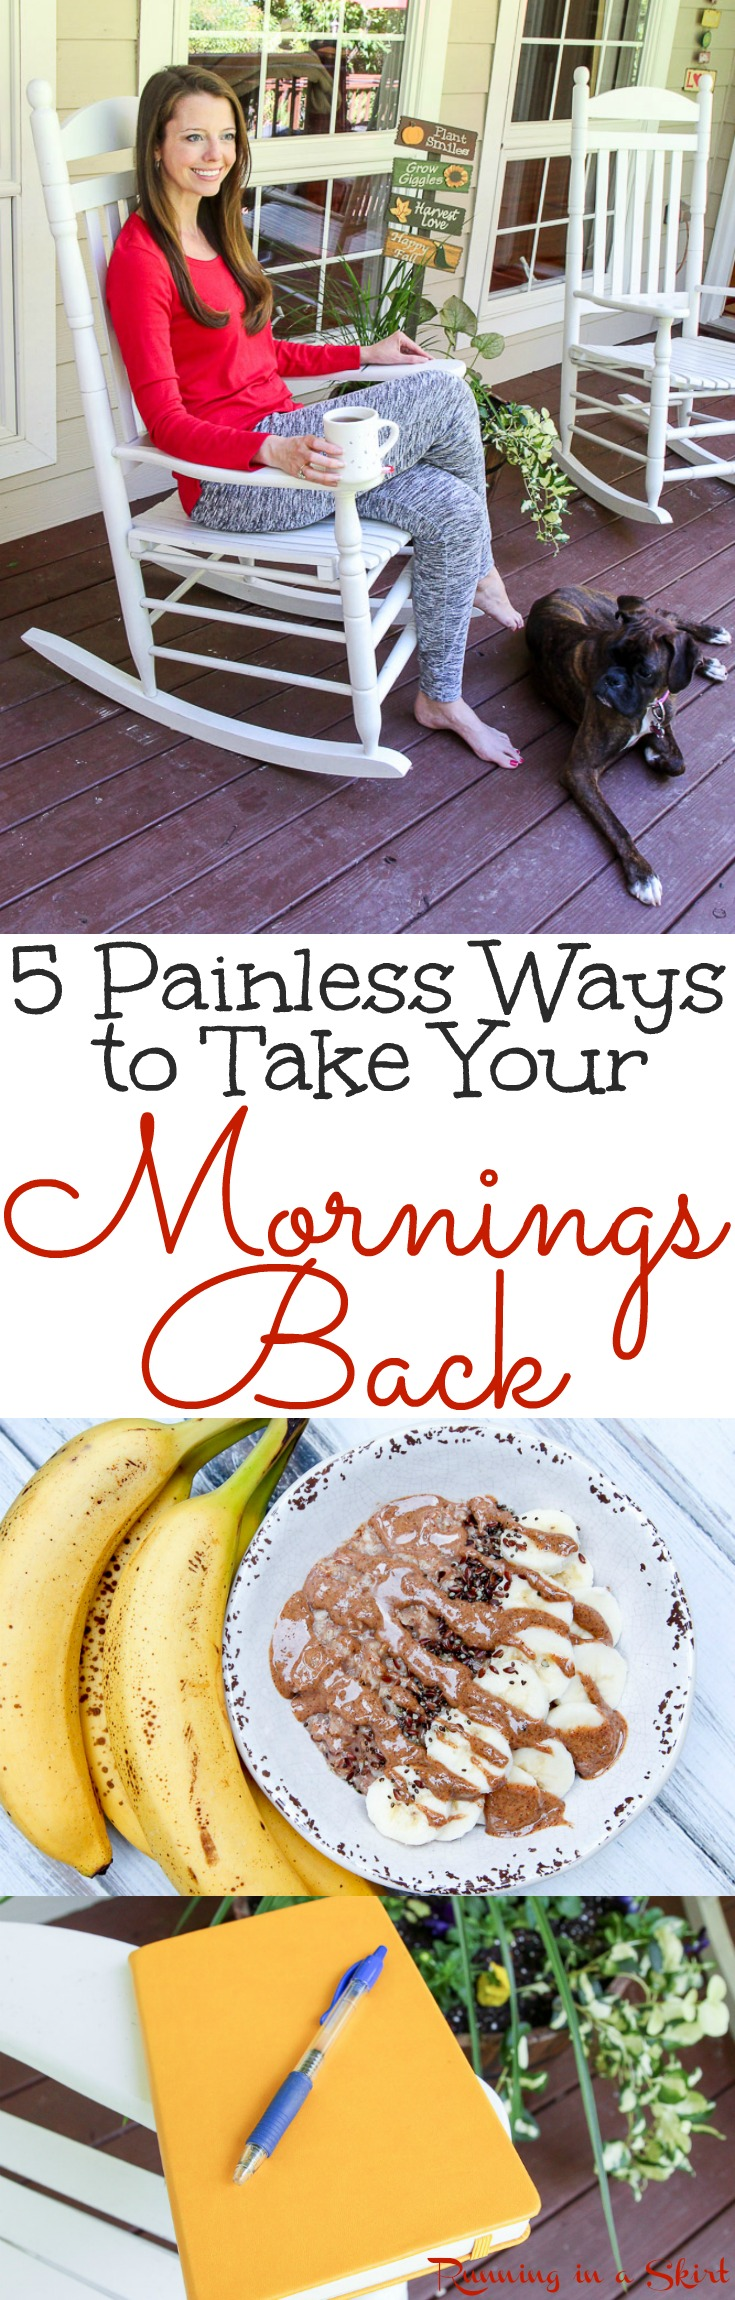 5 Painless Ways to Take Your Mornings Back - a simple healthy morning routine and habits to give you more energy.  Includes breakfast ideas, rituals, meditation, tea, yoga poses and tips to have your best day ever. / Running in a Skirt via @juliewunder